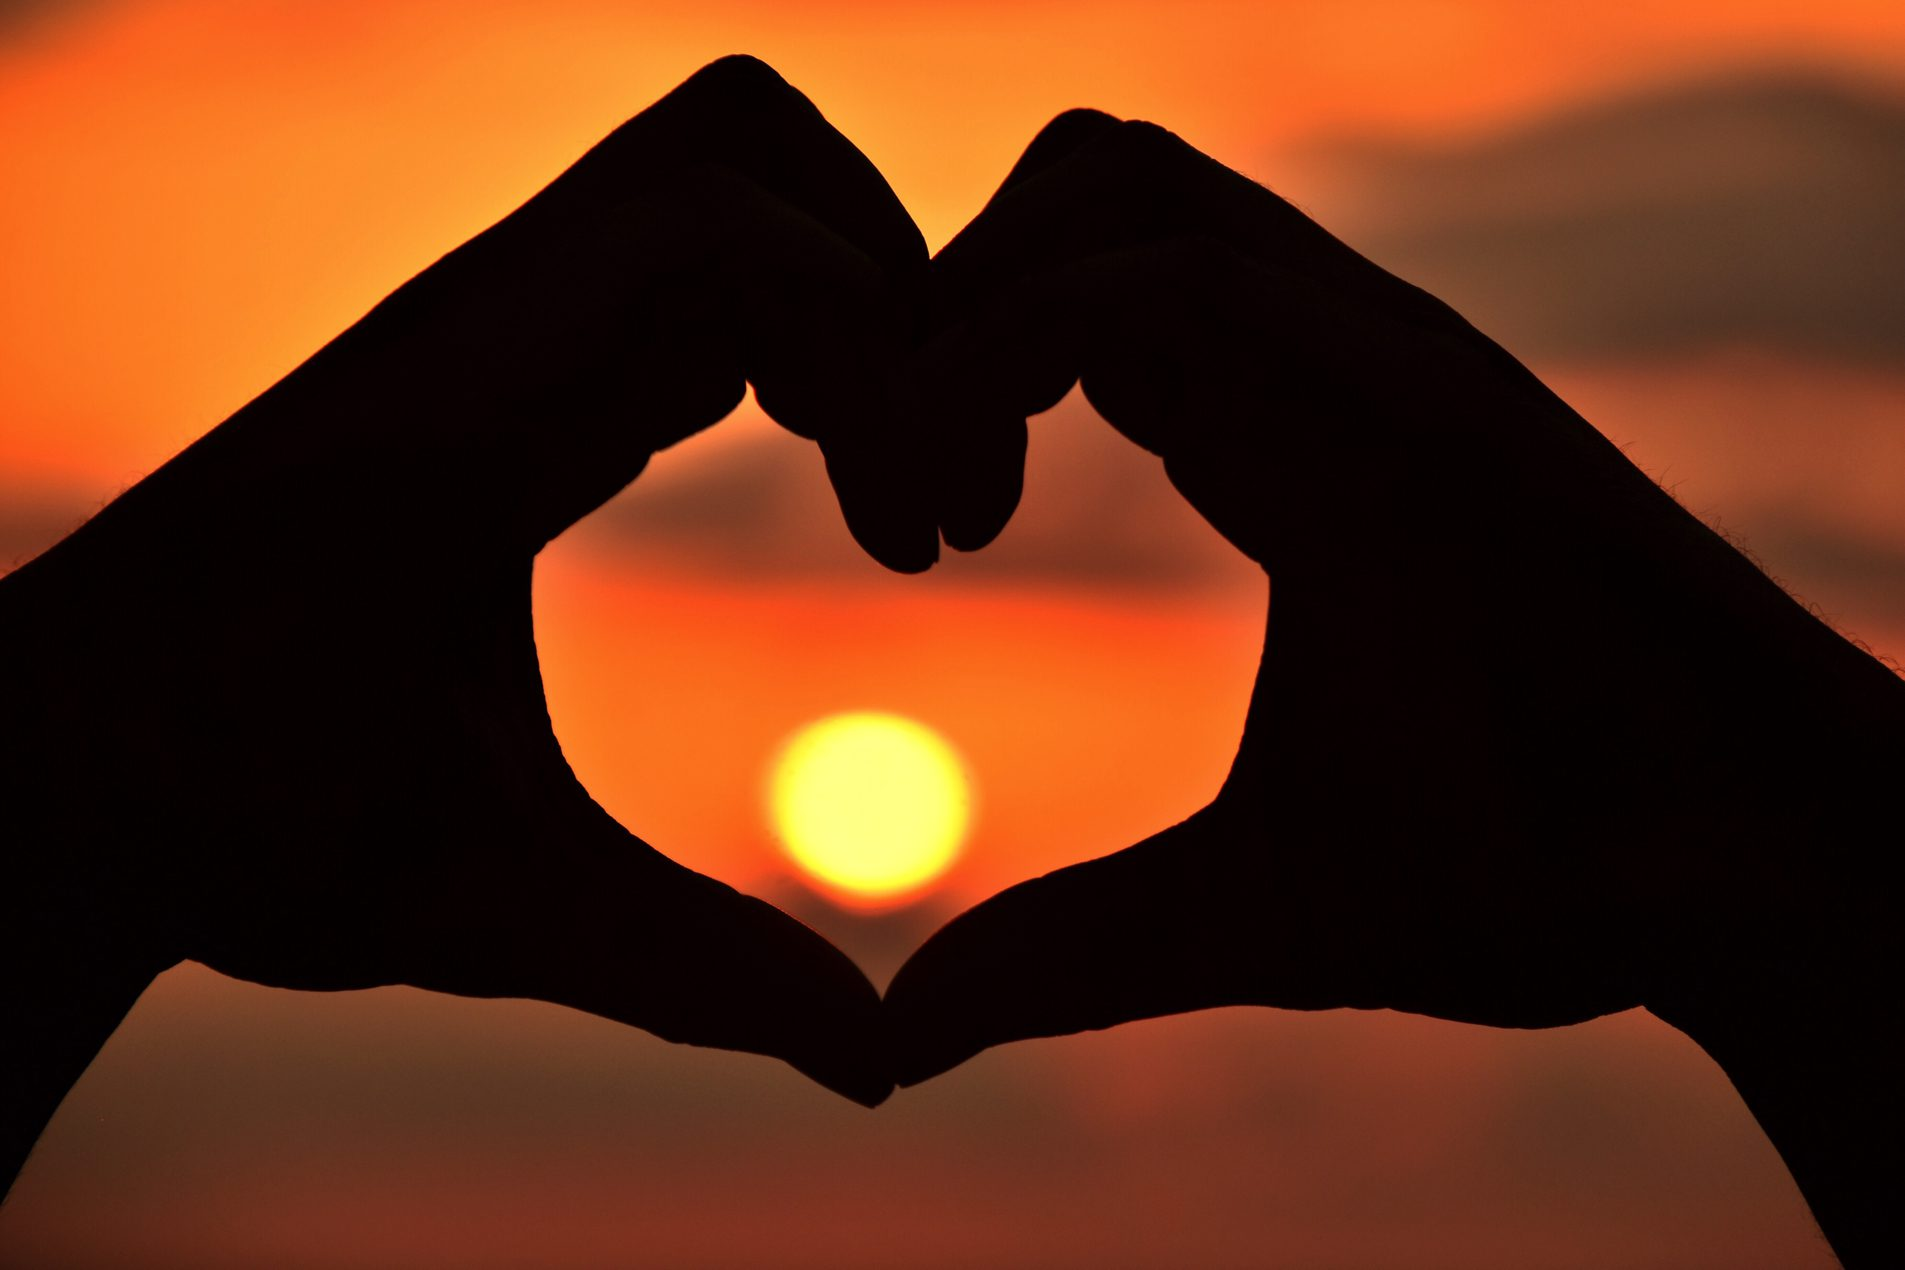 Clay Center Advisory Council - silhouette of hands making heart in front of sunset